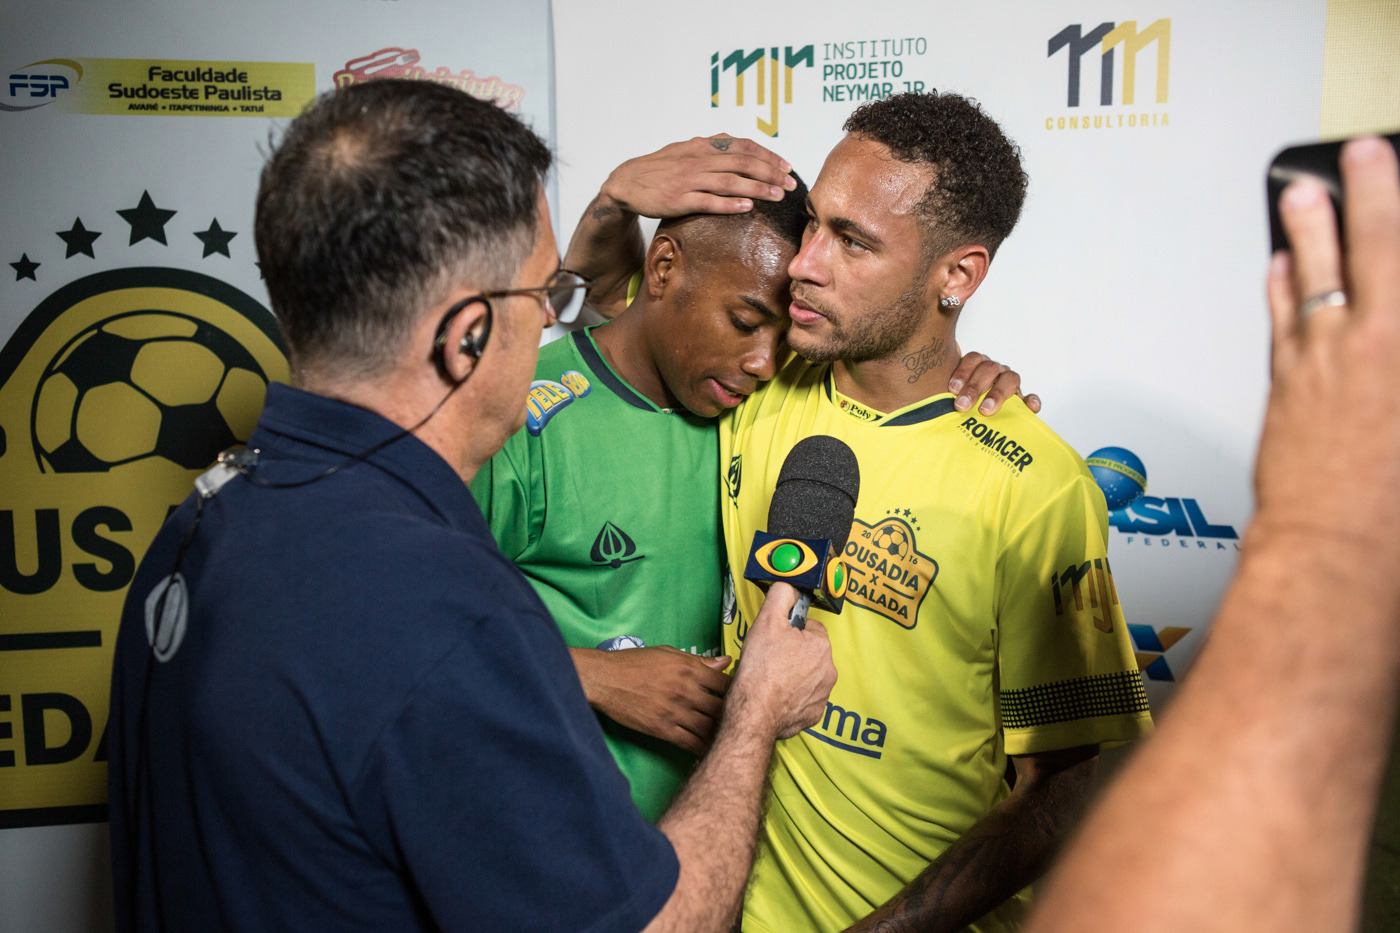 Neymar Jr. and Robinho put on a show in their charitable game adc310902c99a